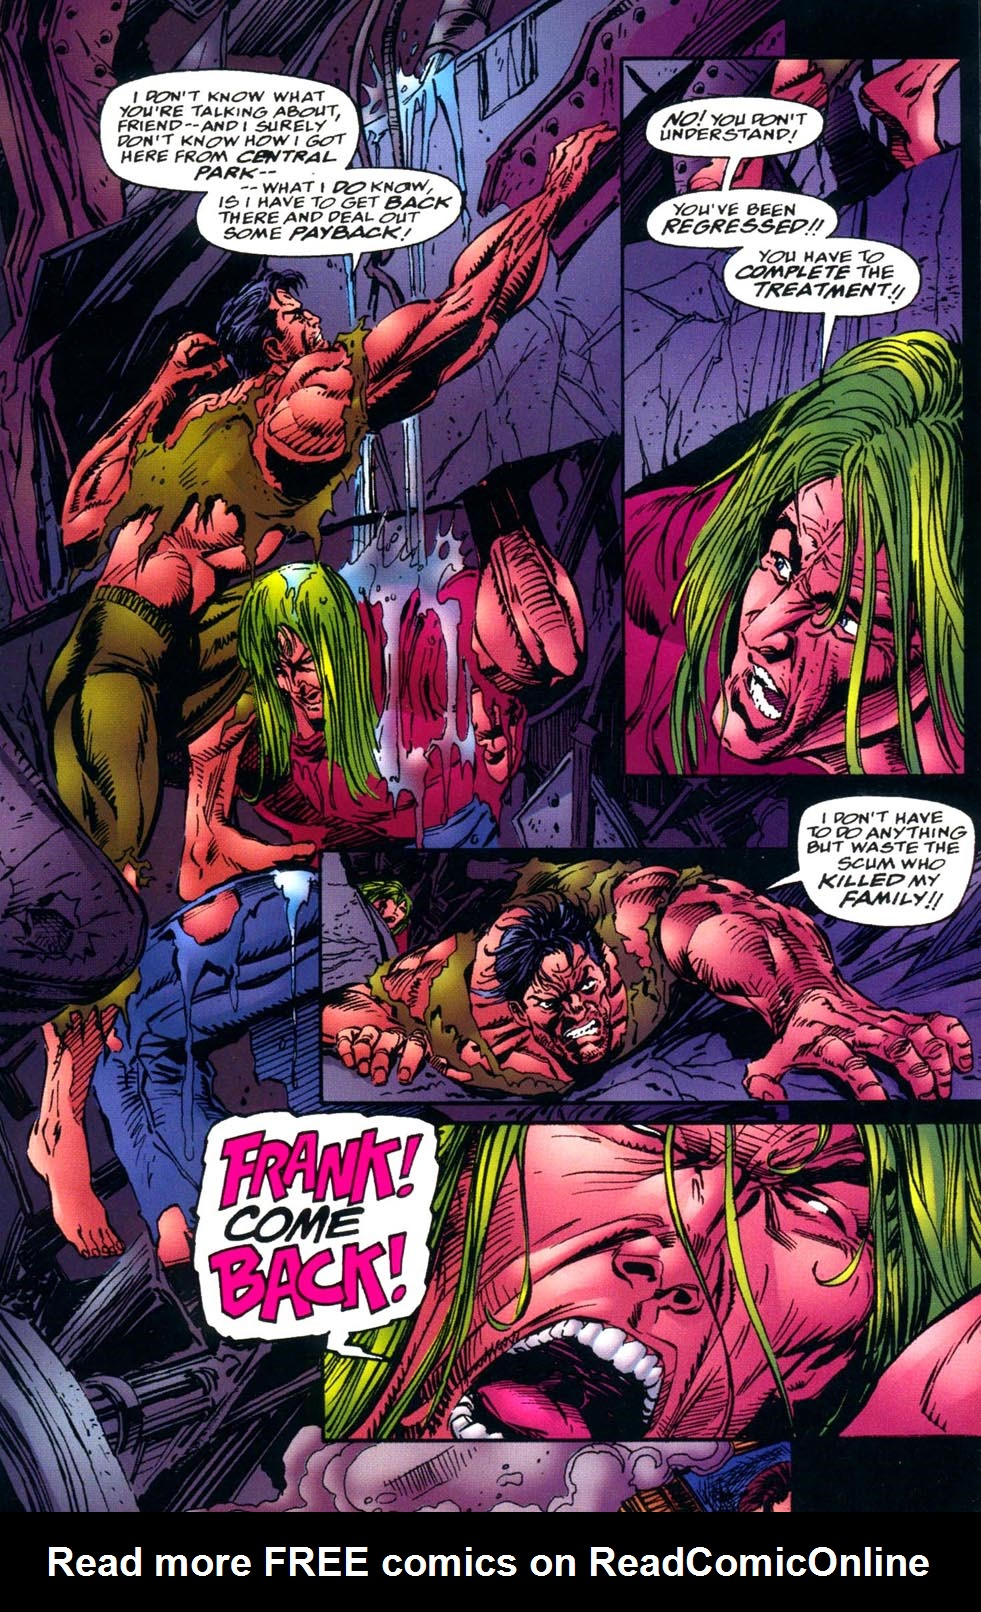 Read online Double Edge comic -  Issue # Issue Alpha - 29